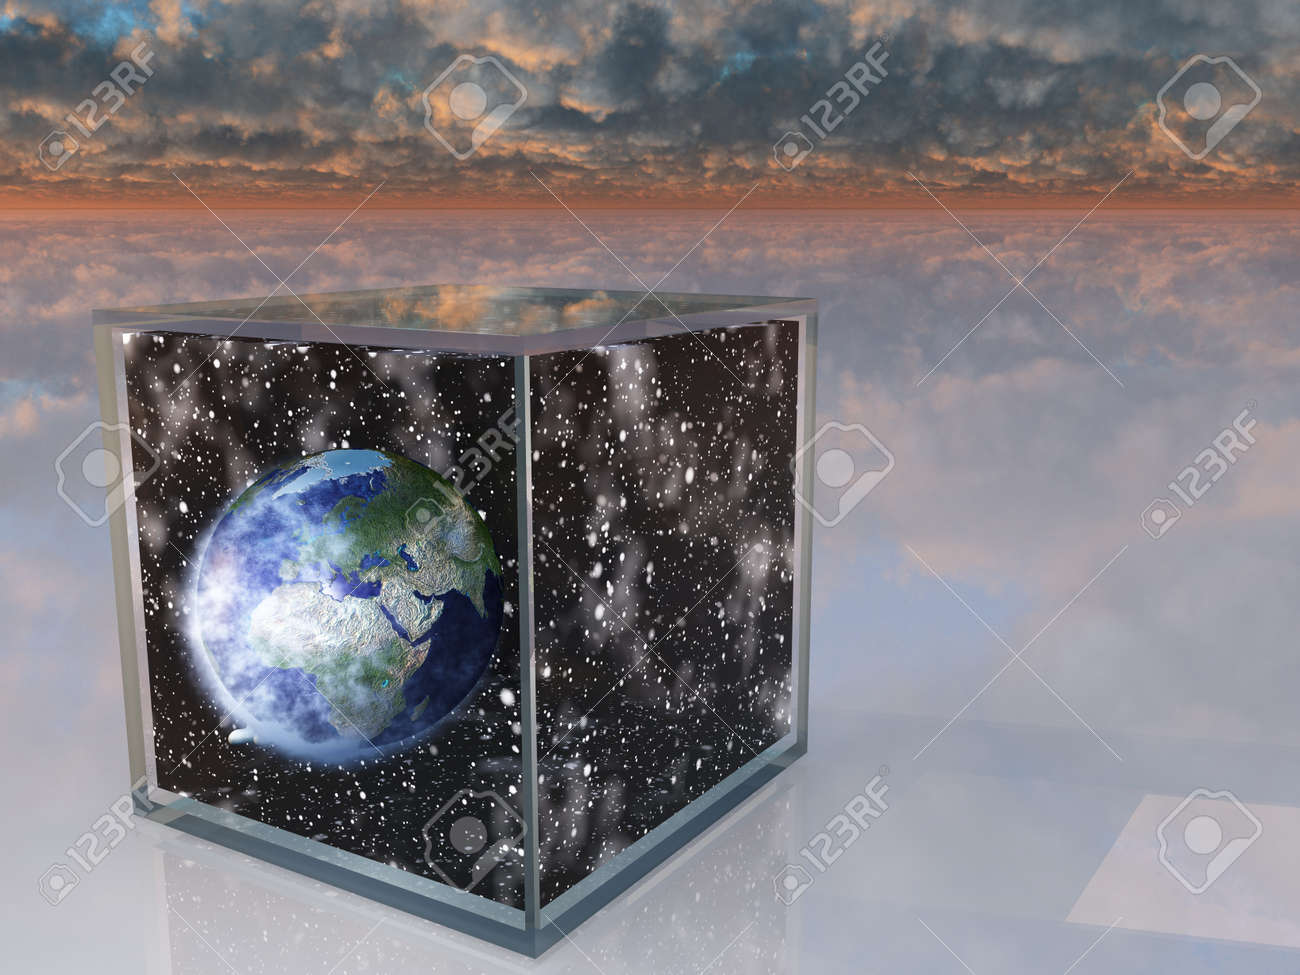 Planet eart and space inside box in surreal scene Stock Photo - 14934334